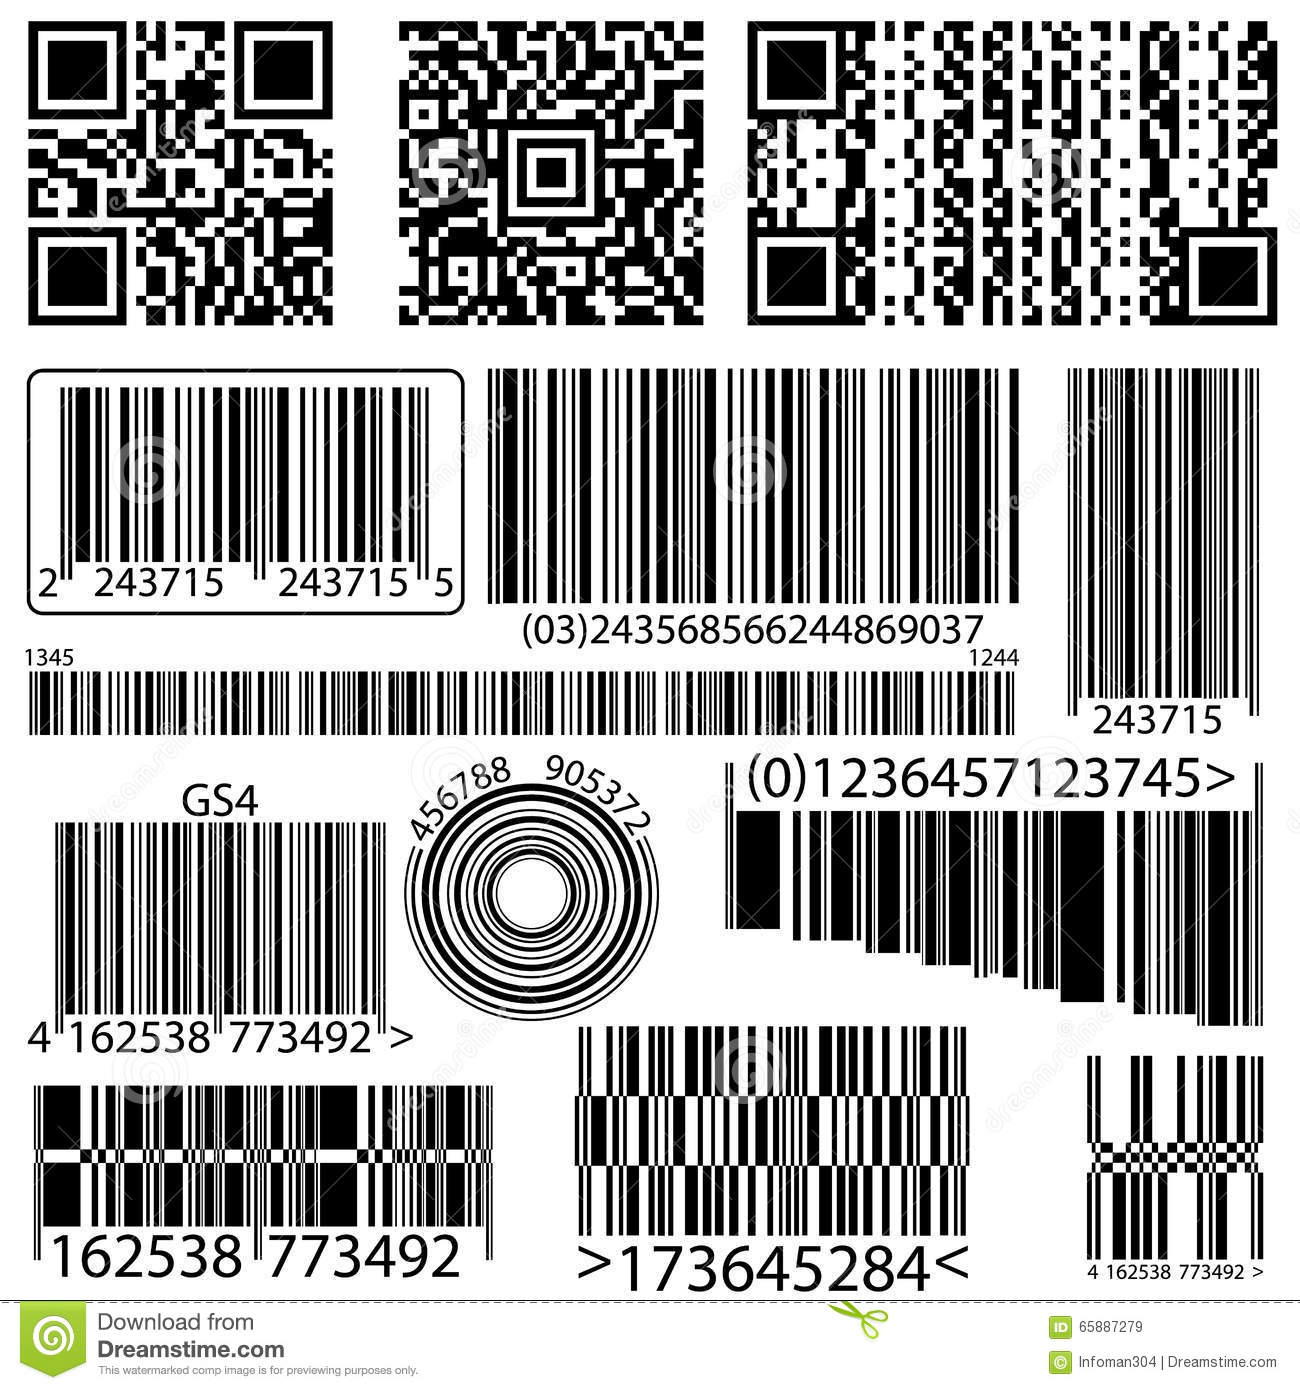 how to create a qr code with transparent background